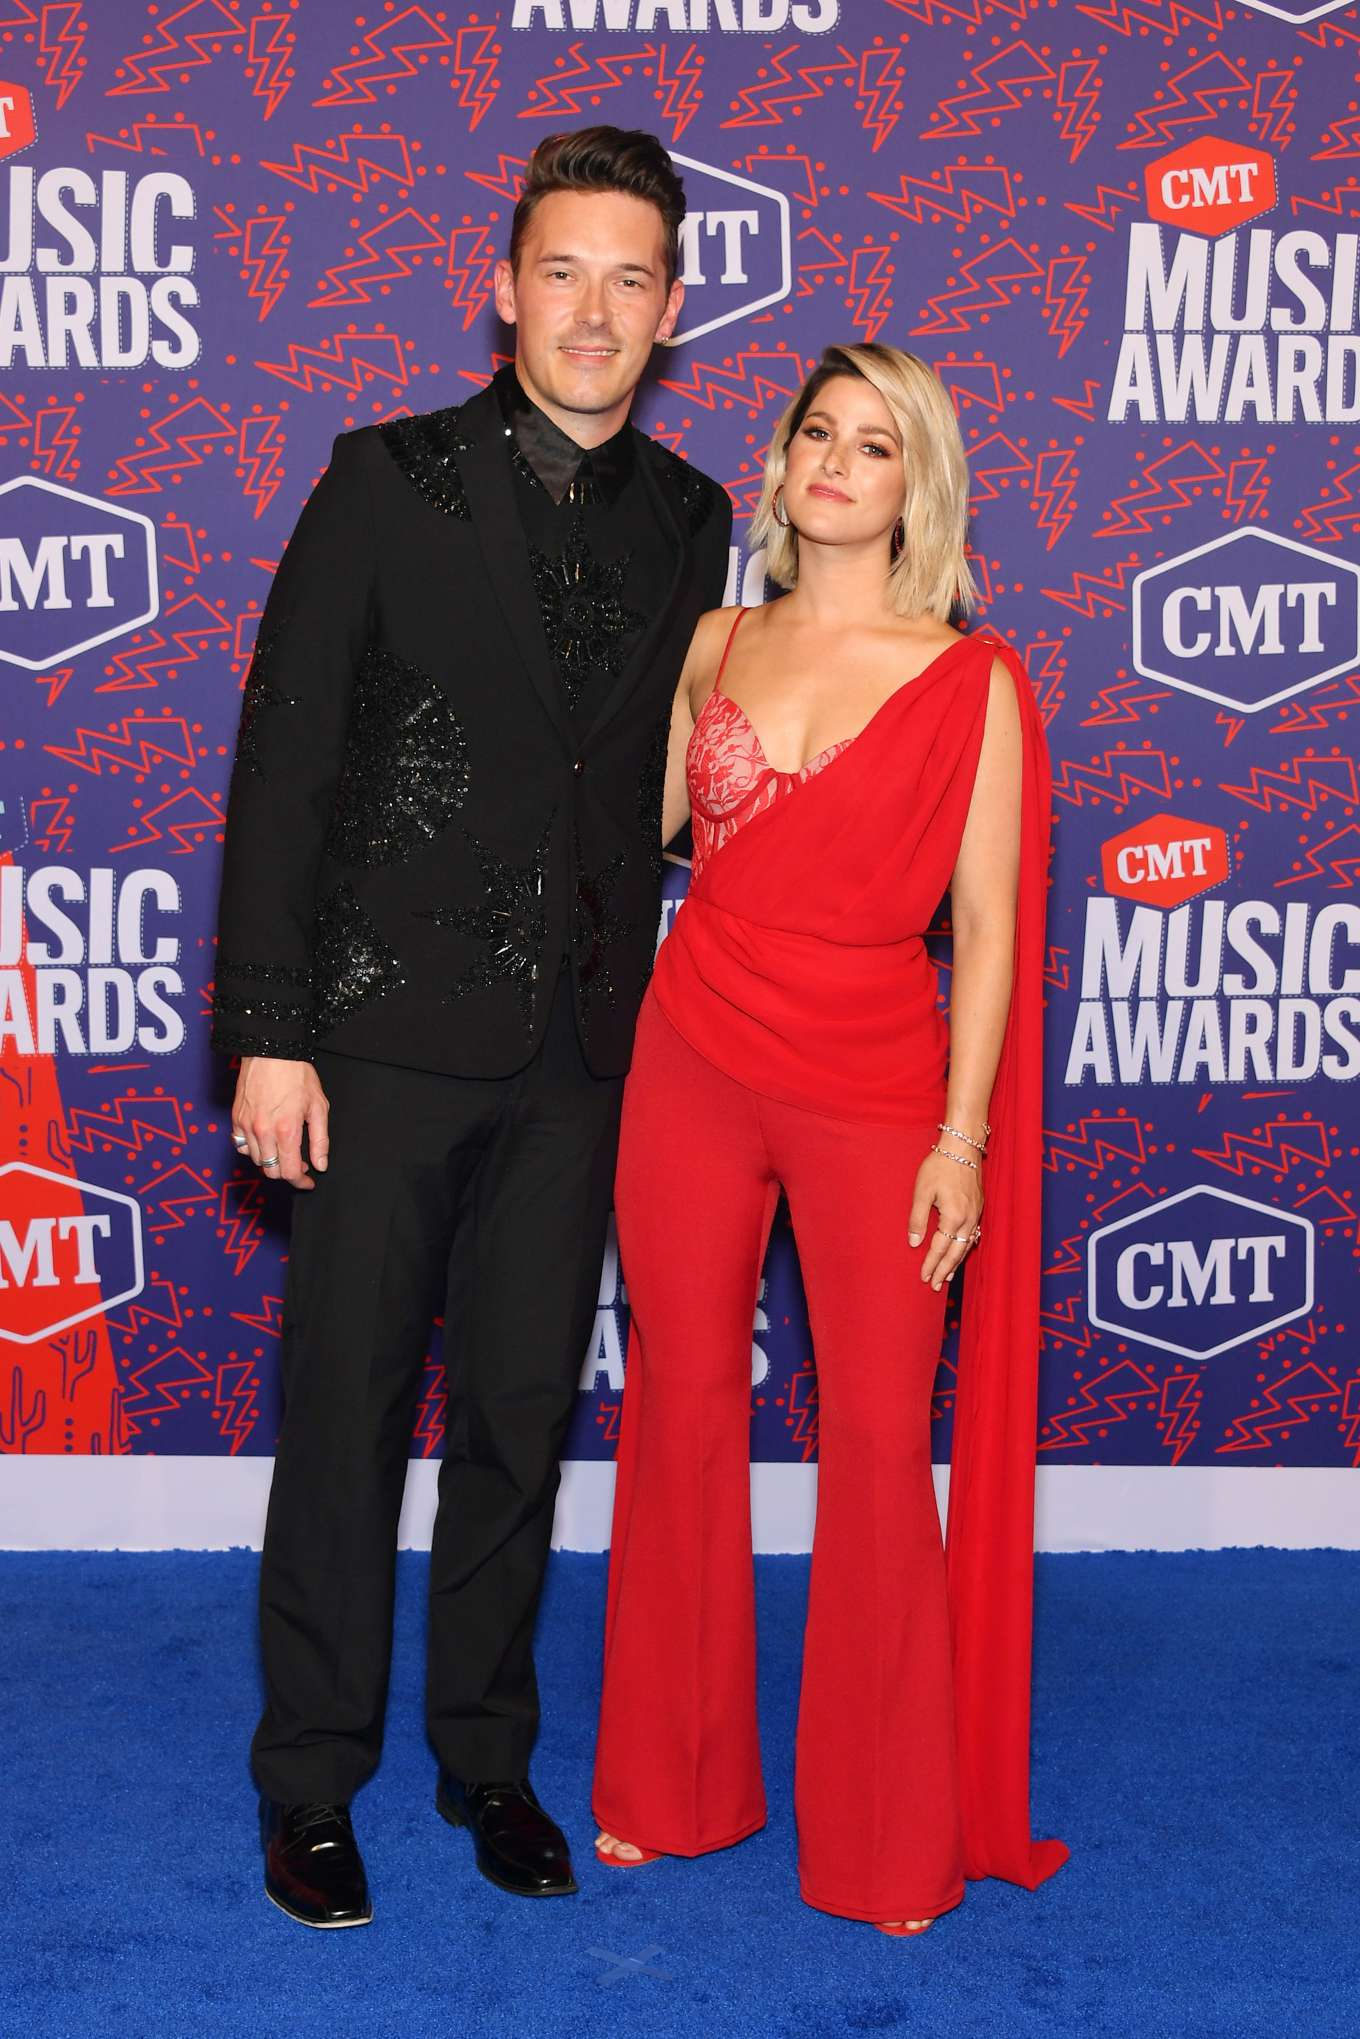 Cassadee Pope 2019 : Cassadee Pope: 2019 CMT Music Awards-05